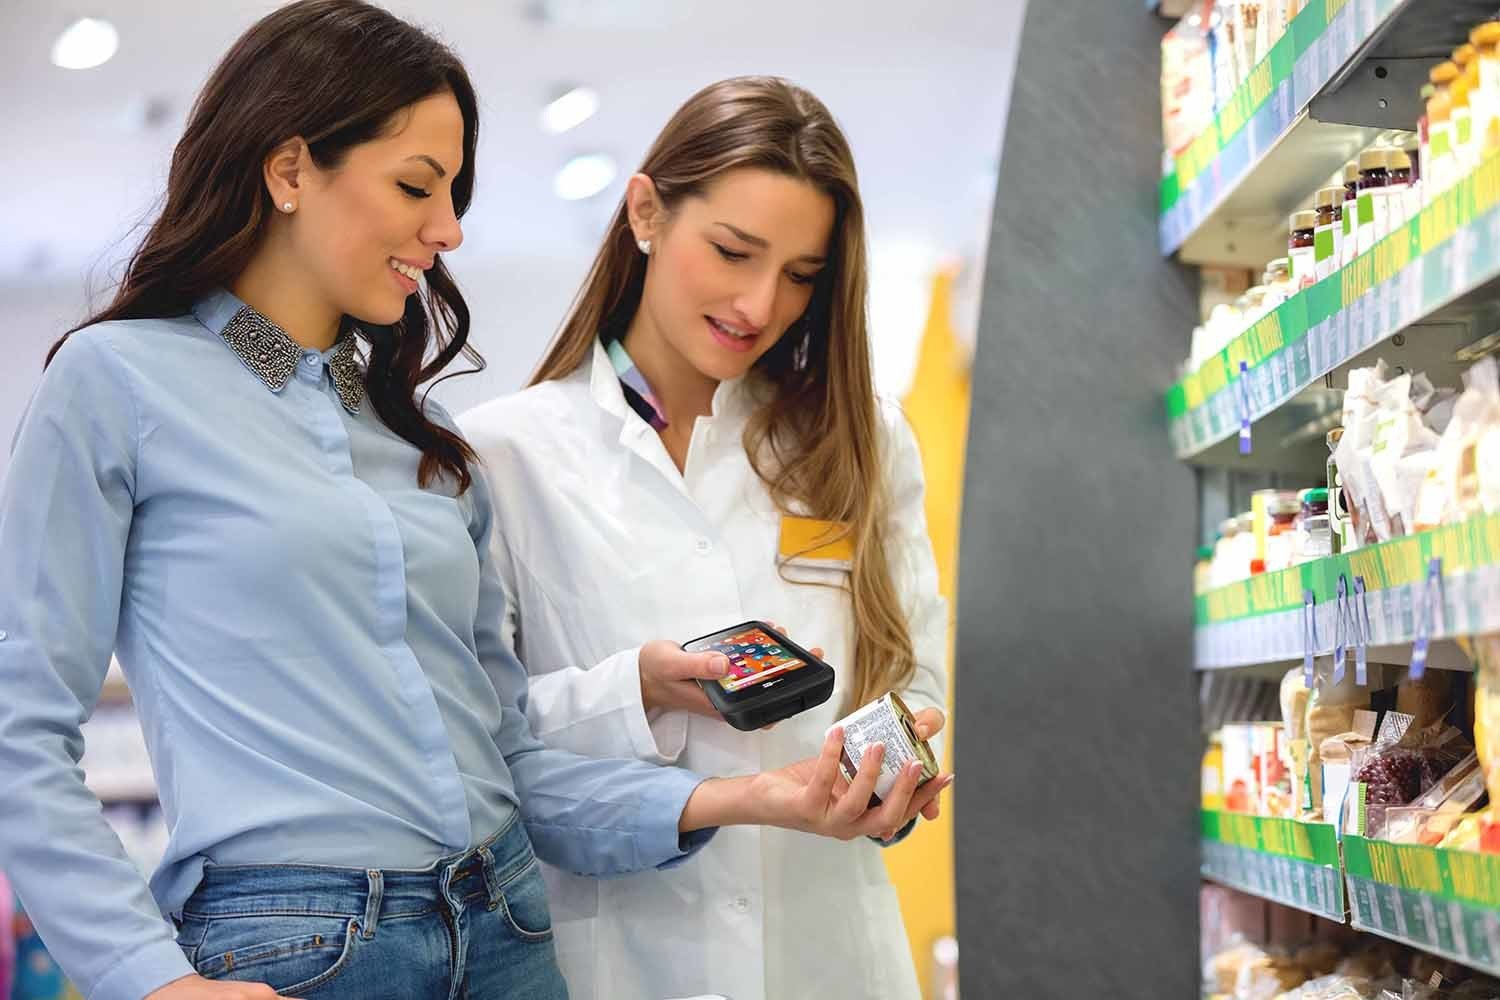 Retail Applications - Mobile Inventory Management|Australia CipherLab world leader in AIDC solutions